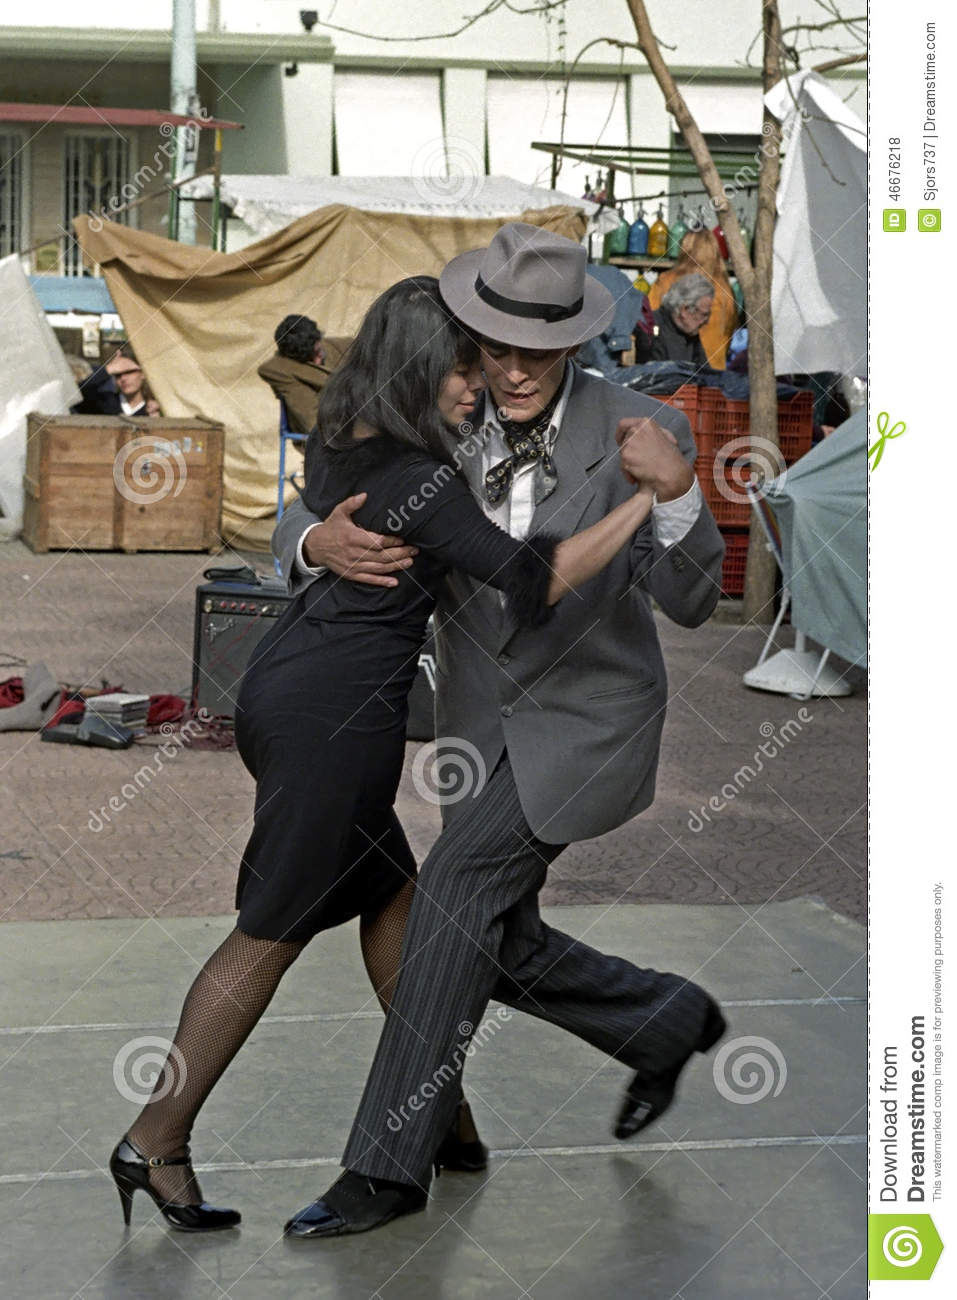 Download Argentine Girl Wallpaper For Mac: Argentine Man And Woman Dancing The Tango Editorial Stock